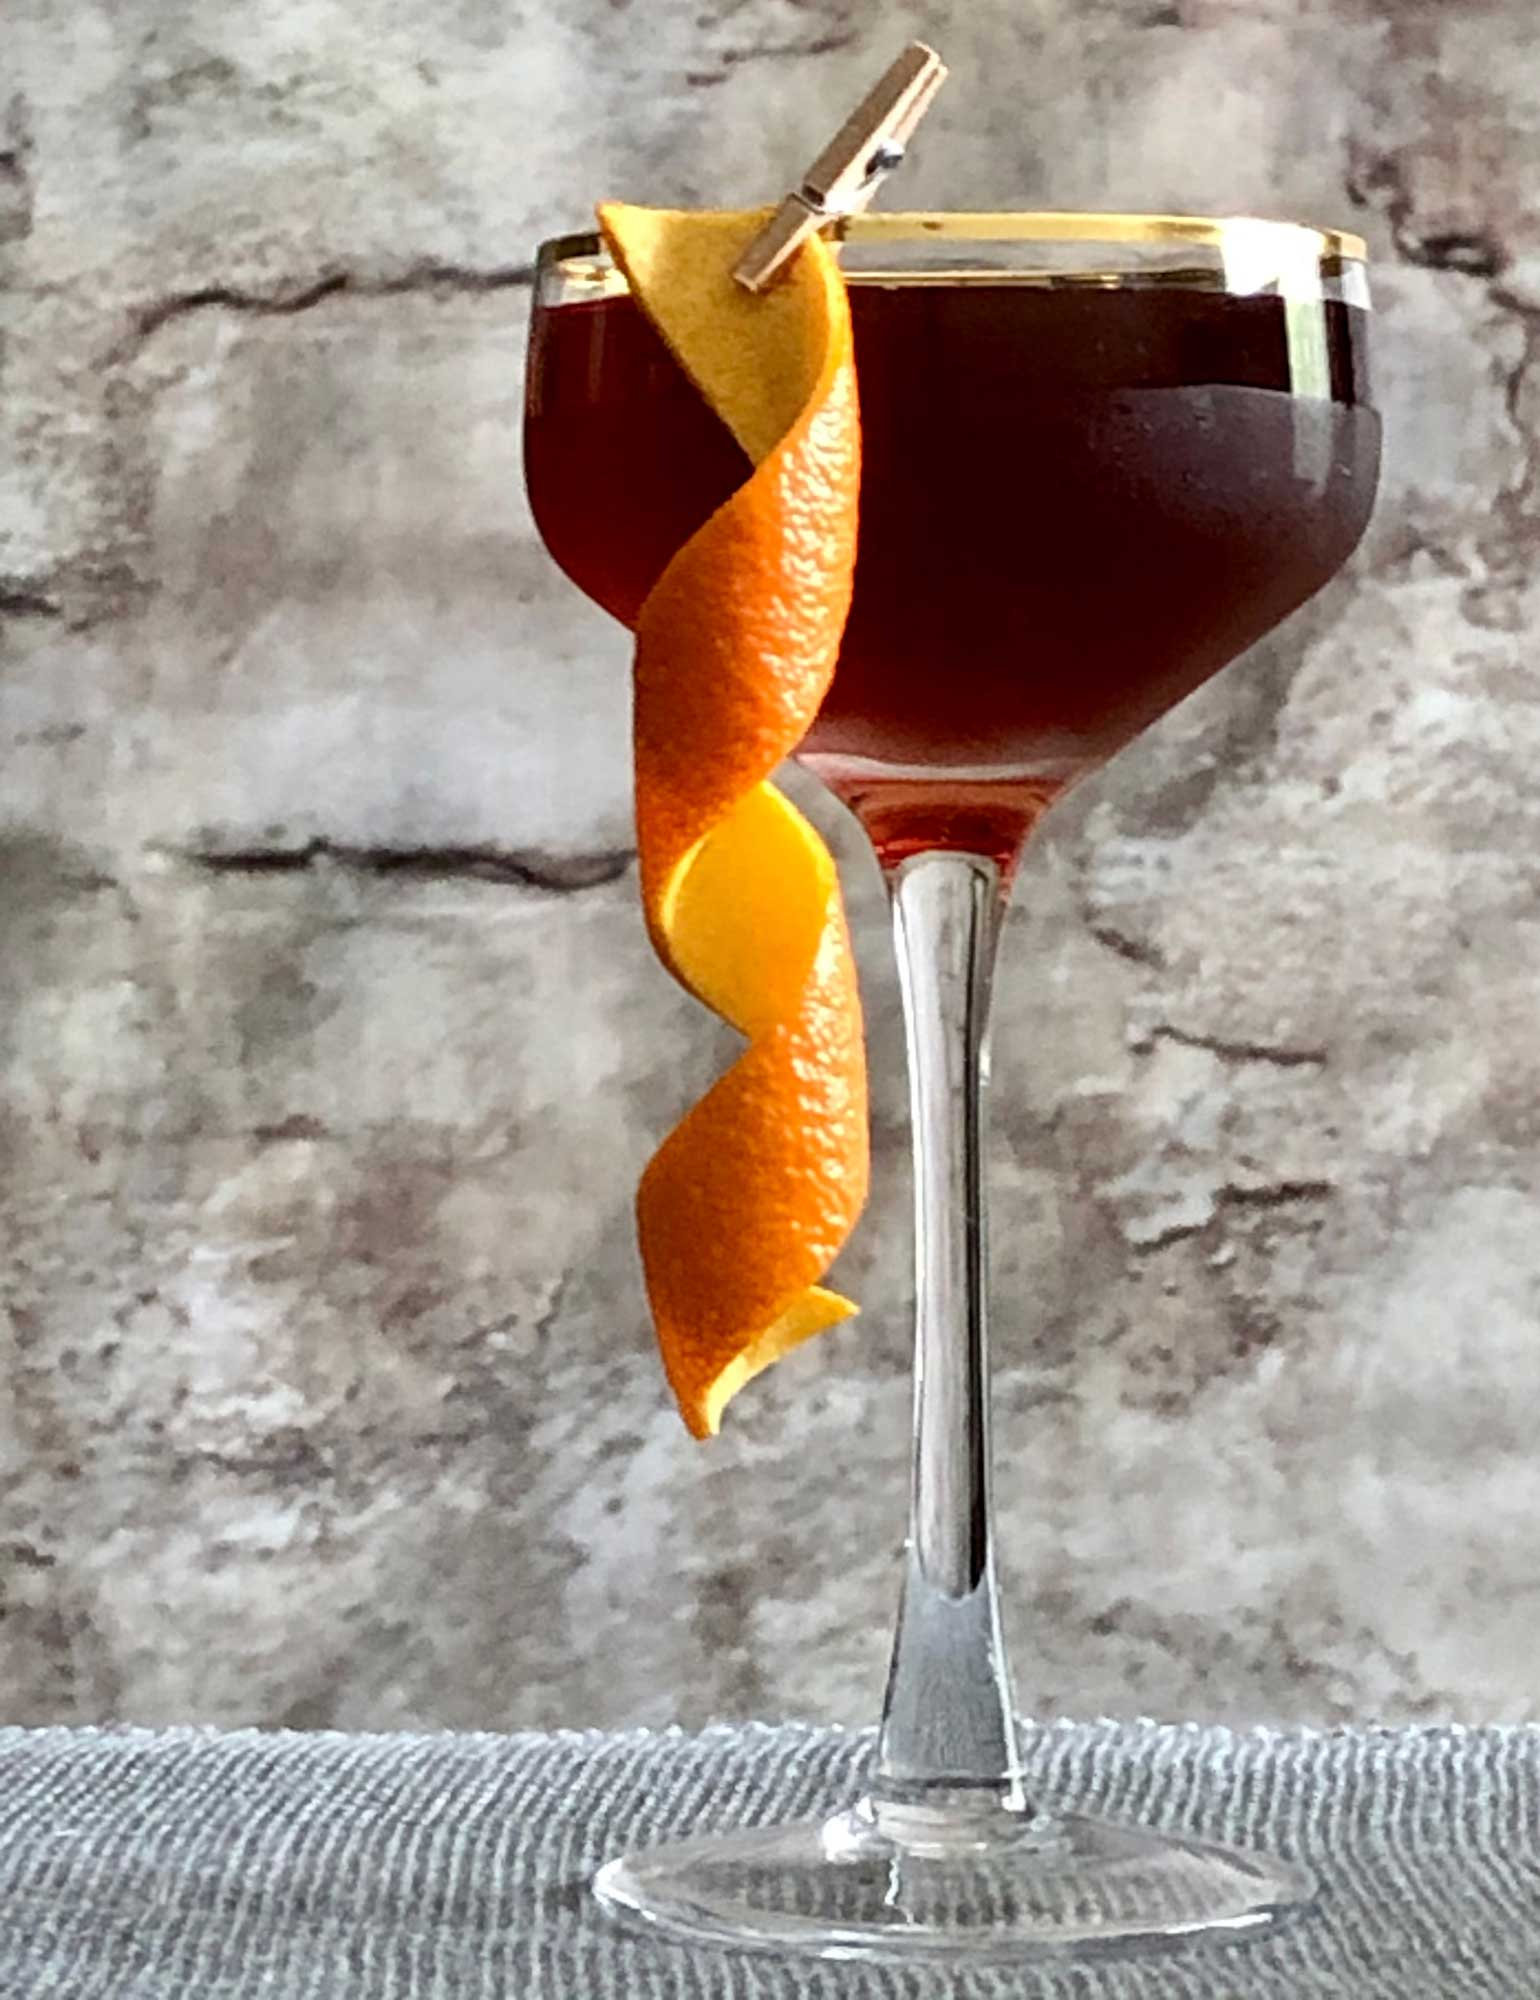 An example of the The Charleston, the mixed drink (cocktail) featuring bourbon whiskey, Henriques & Henriques Rainwater Madeira, Henriques & Henriques Generoso Doce 5 Year Old Madeira, and Angostura bitters; photo by Lee Edwards